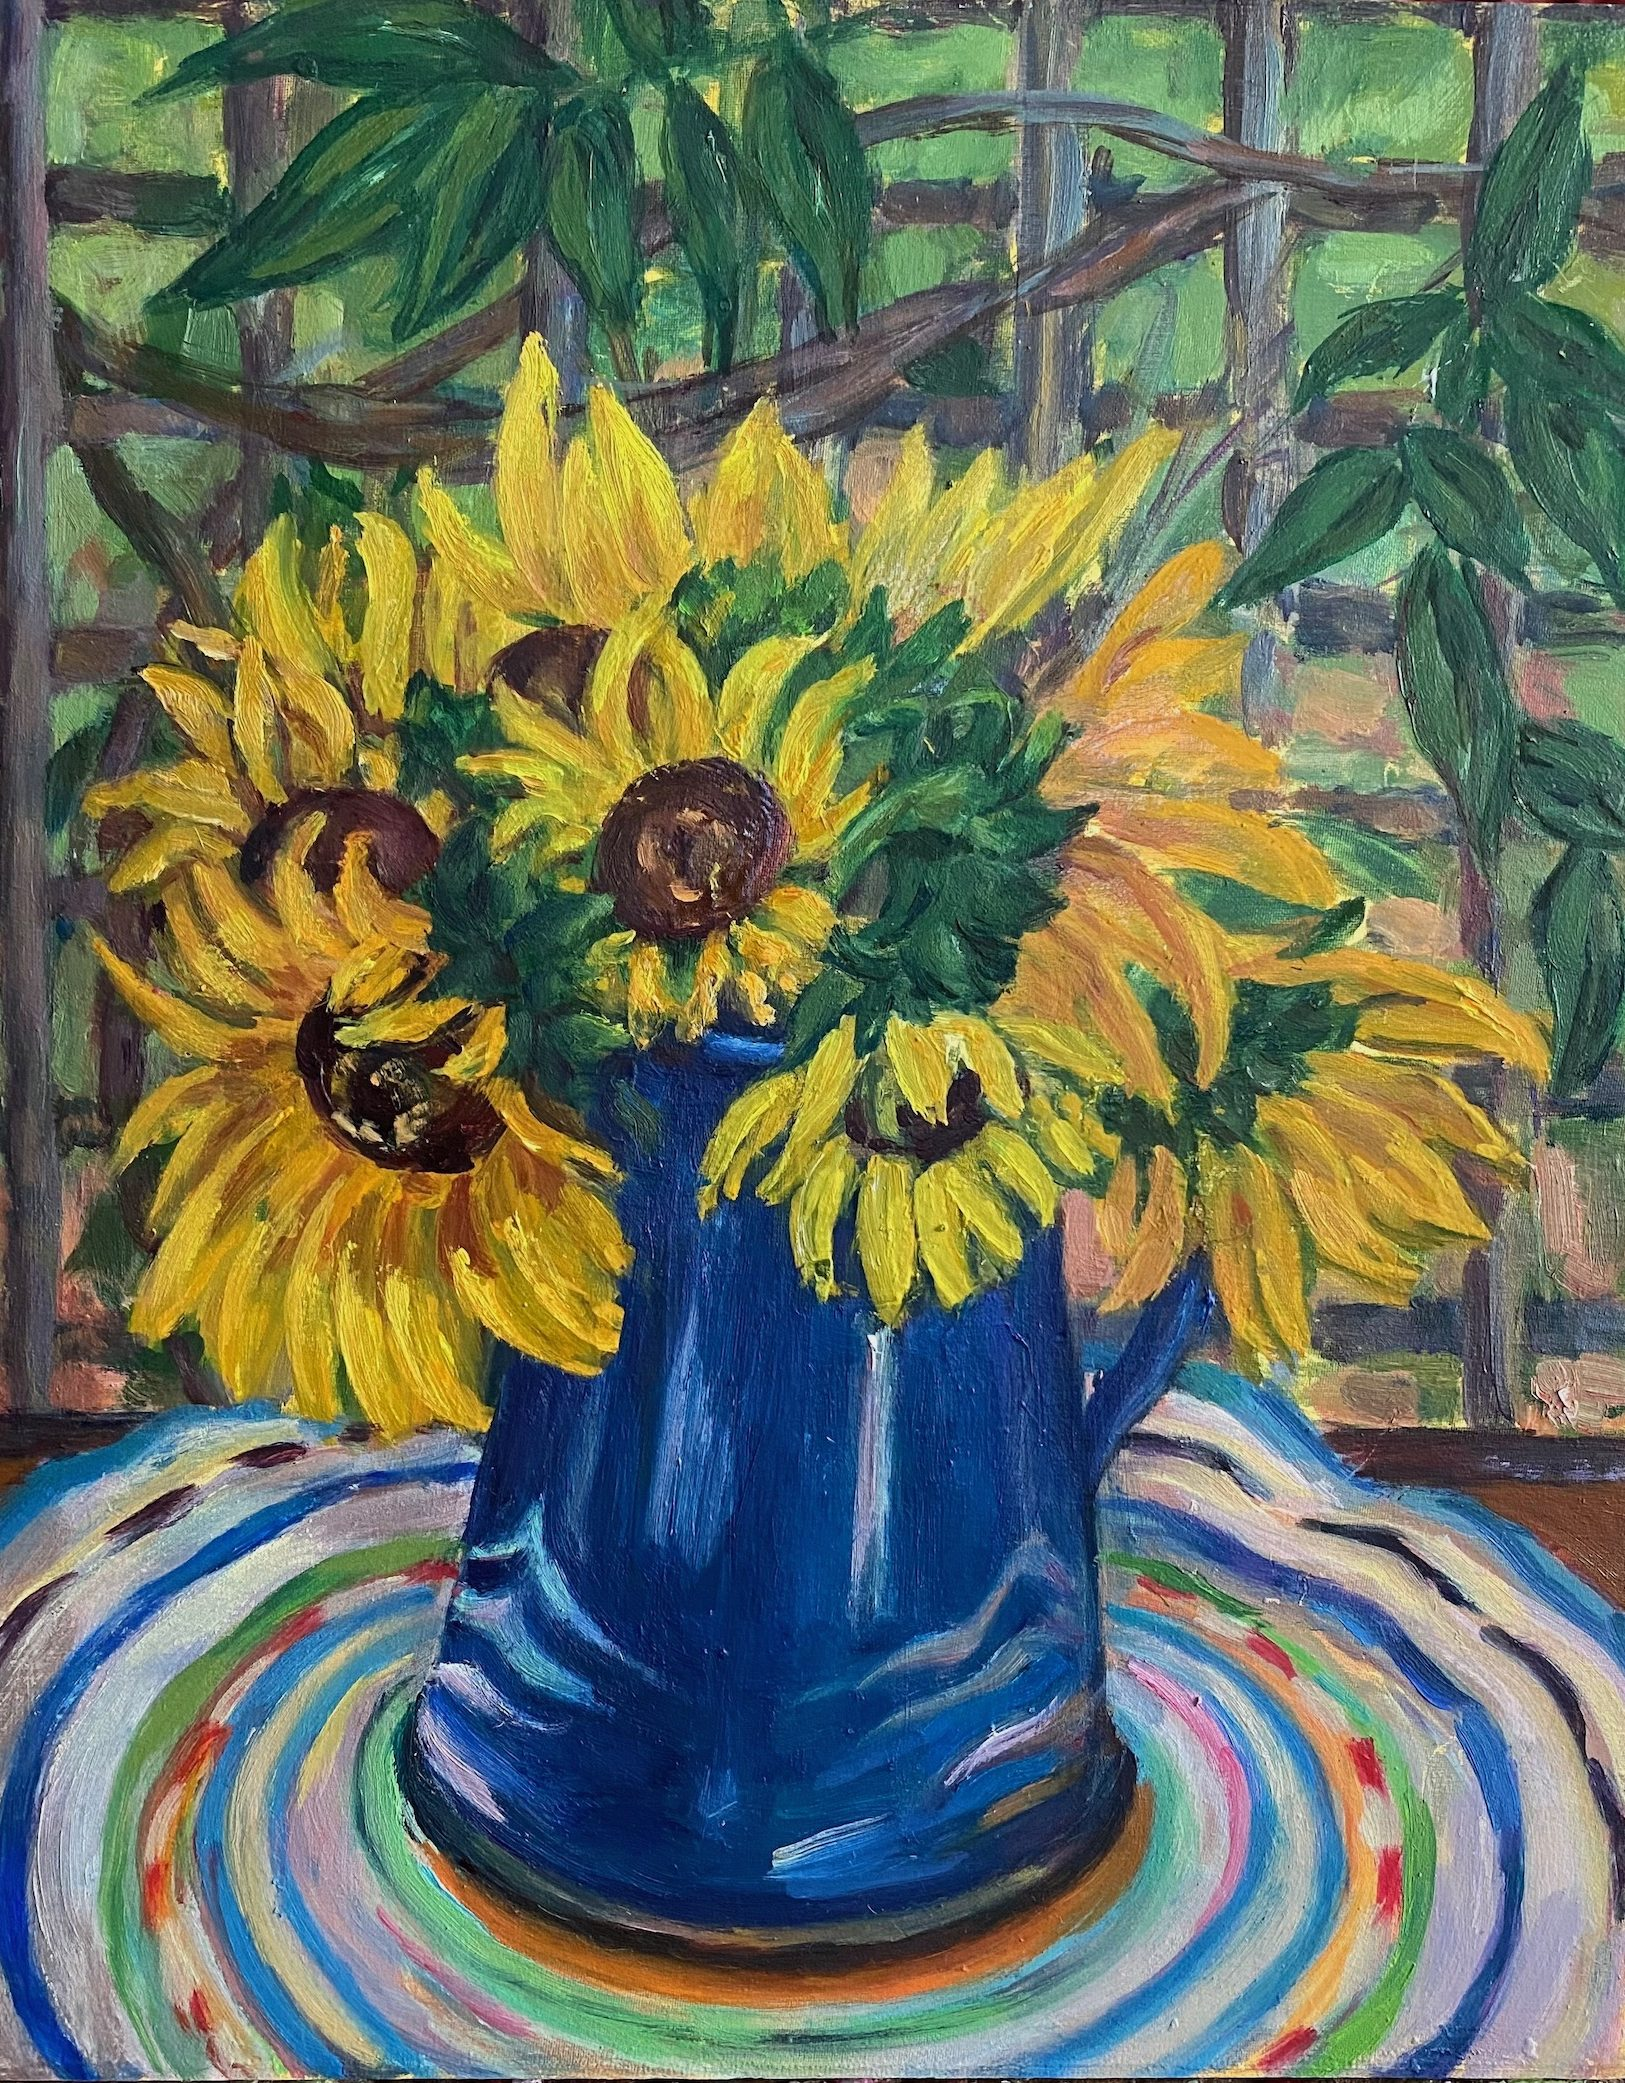 Sunflowers and Blue Coffee Pot, oil on panel, 10 x 8